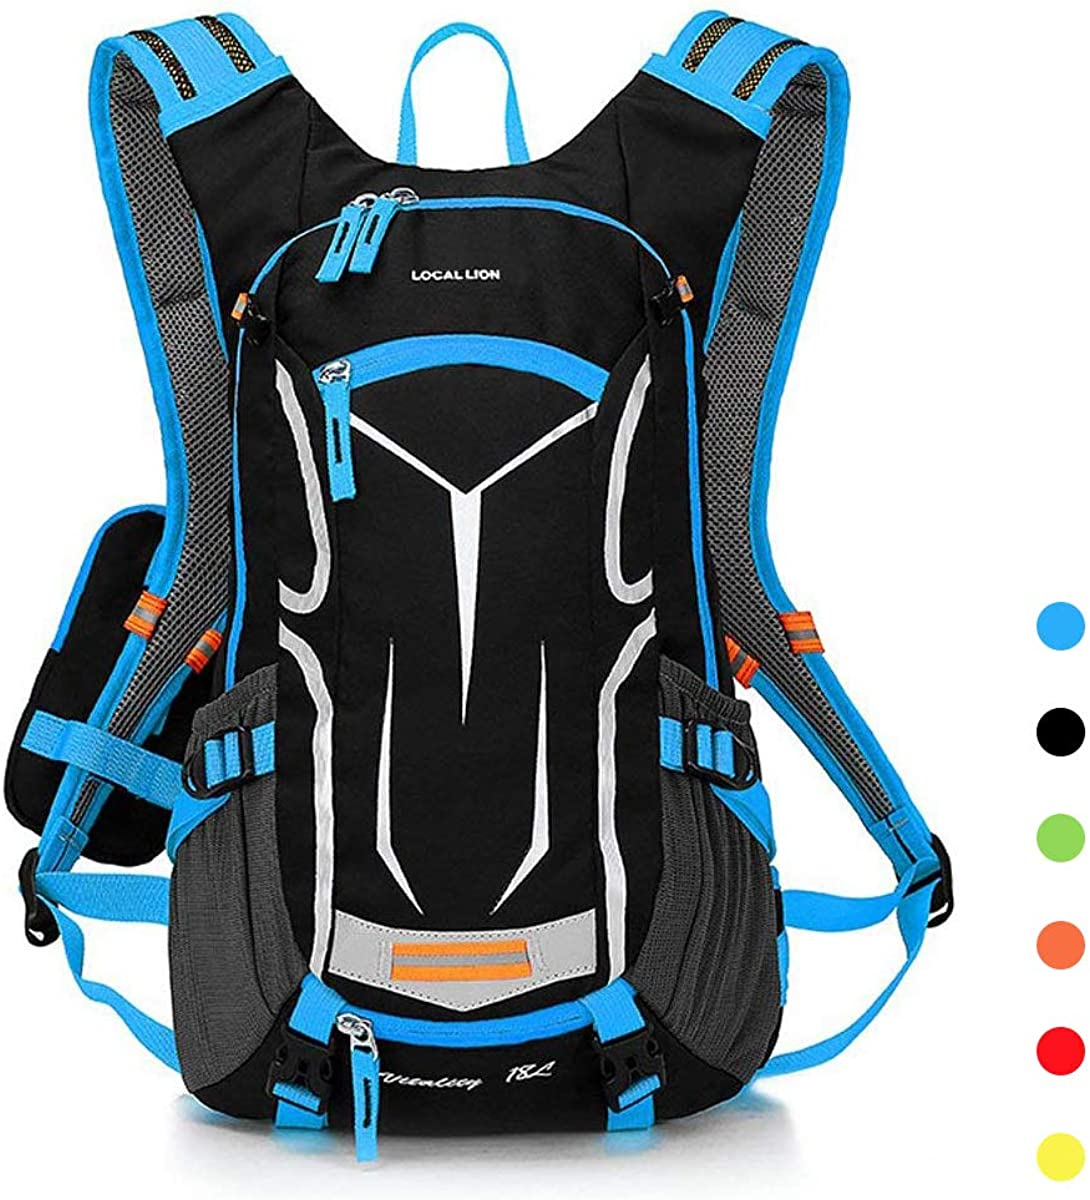 LOCALLION Cycling Backpack Biking Daypack For Outdoor Sports Running Breathable Hydration Pack Men Women 18L